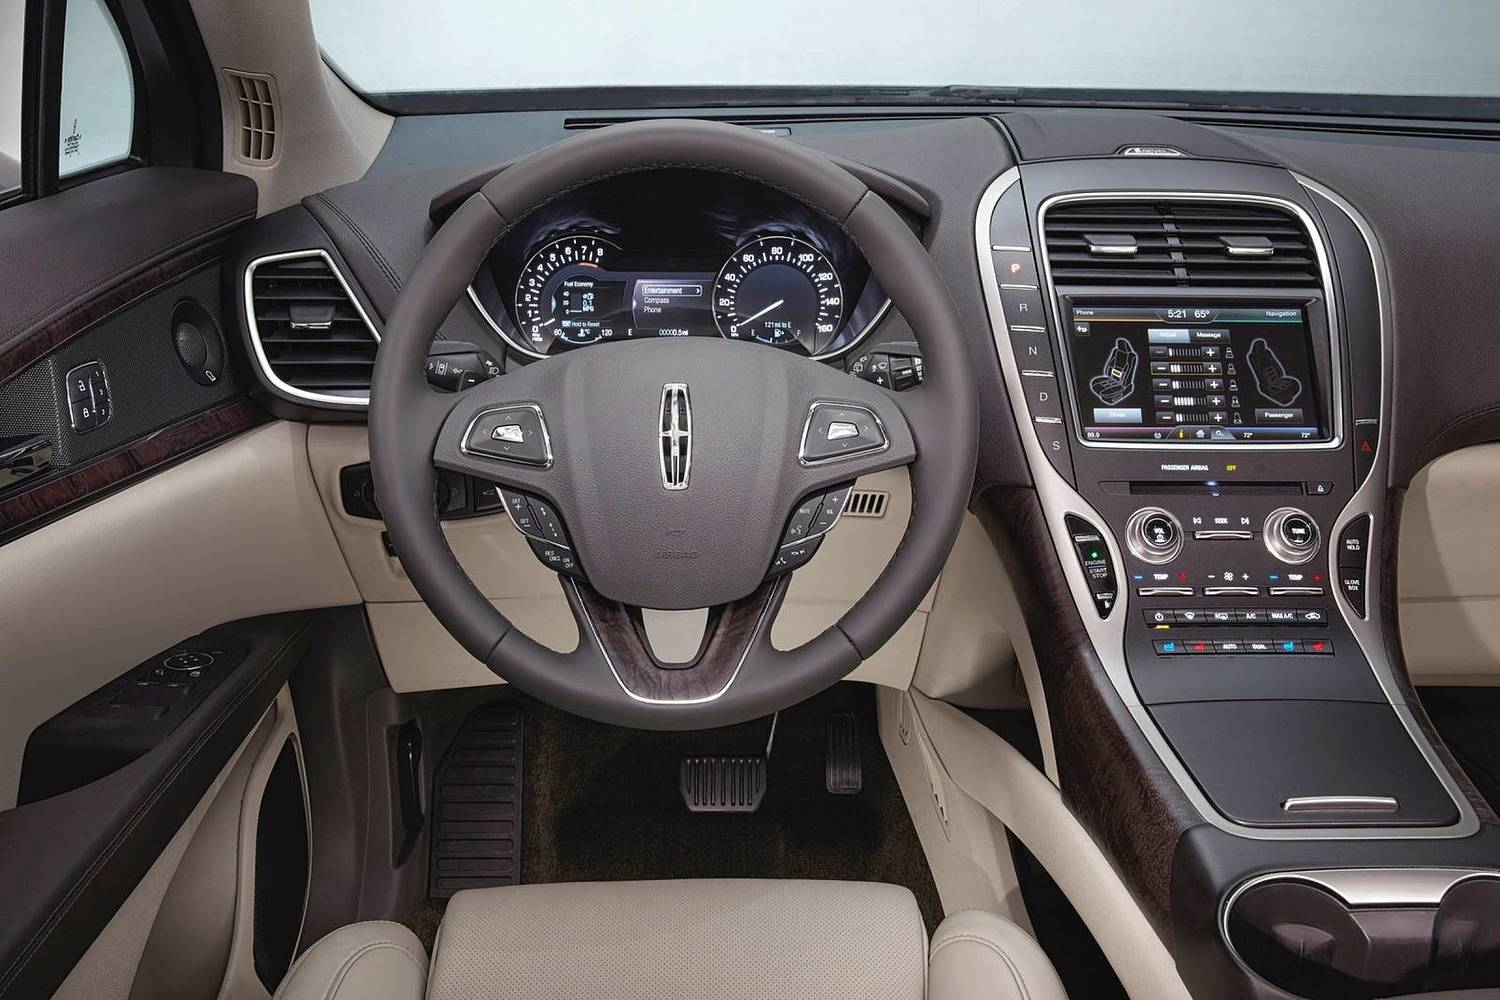 Lincoln MKX Reserve 4dr SUV Steering Wheel Detail (2017 model year shown)